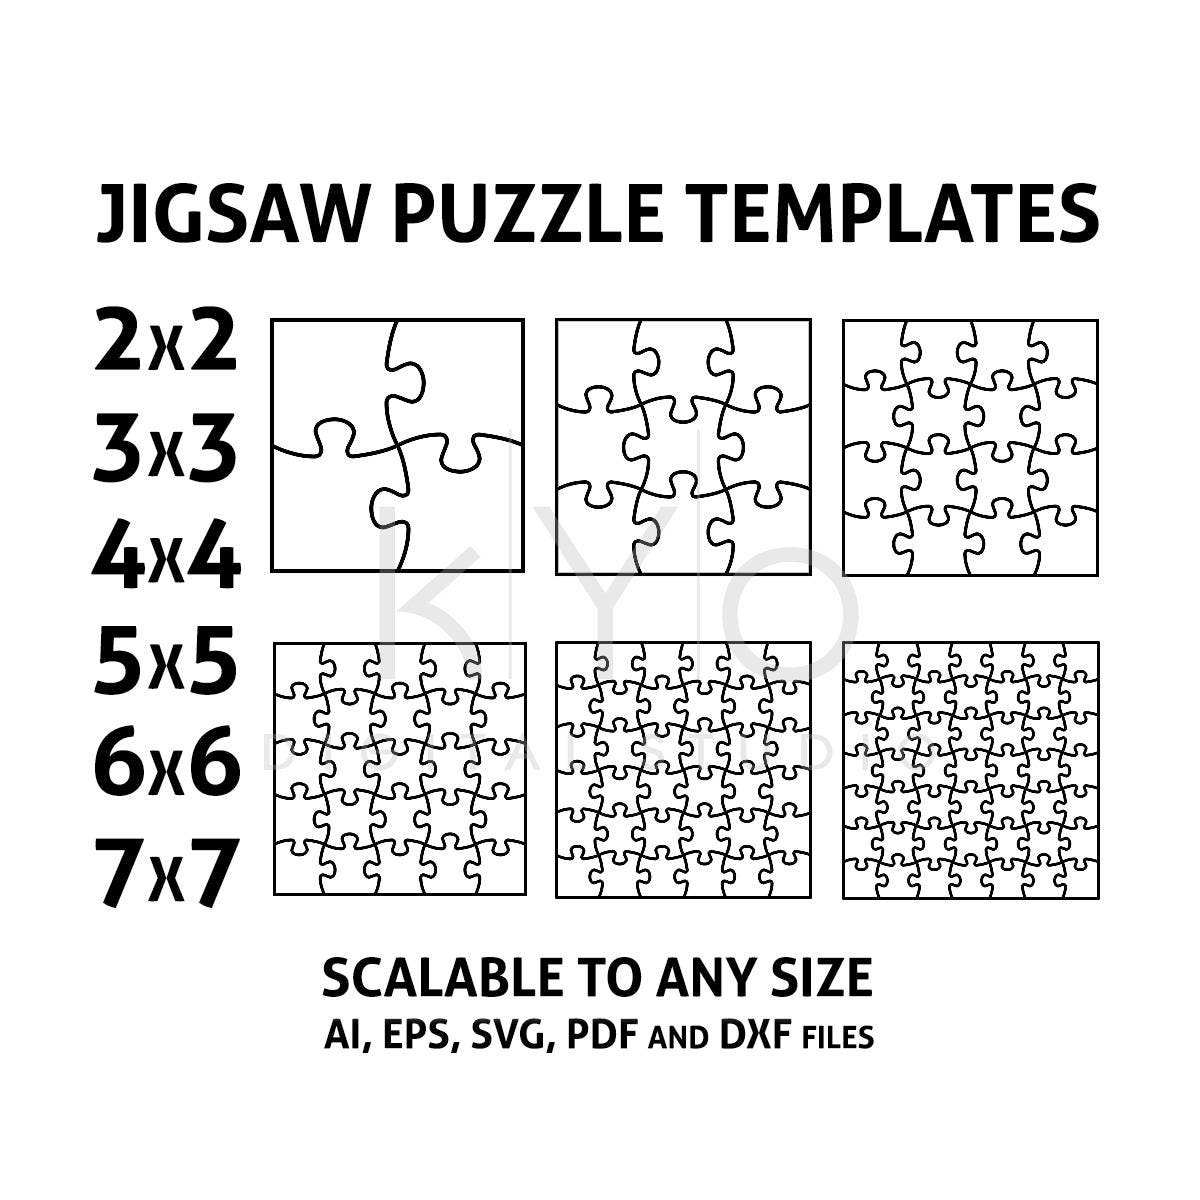 Jigsaw Puzzle Templates AI EPS SVG pdf dxf files Square